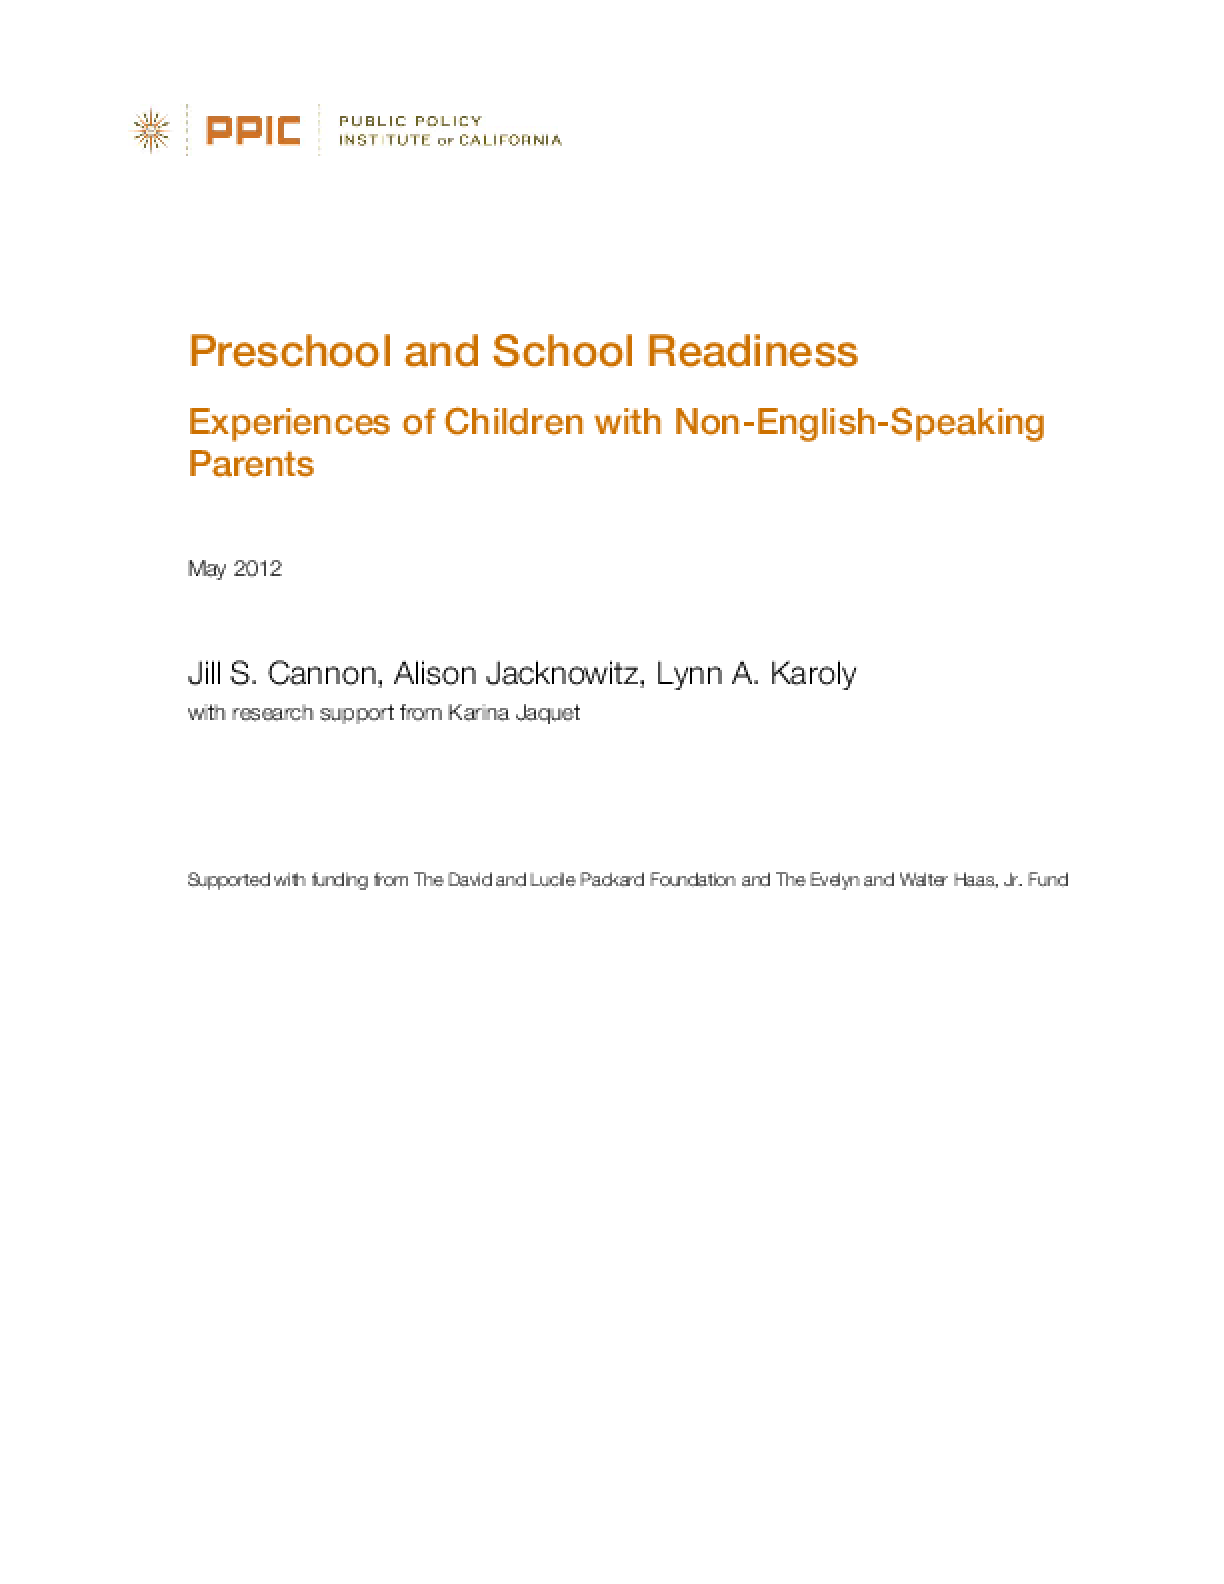 Preschool and School Readiness: Experiences of Children With Non-English-Speaking Parents